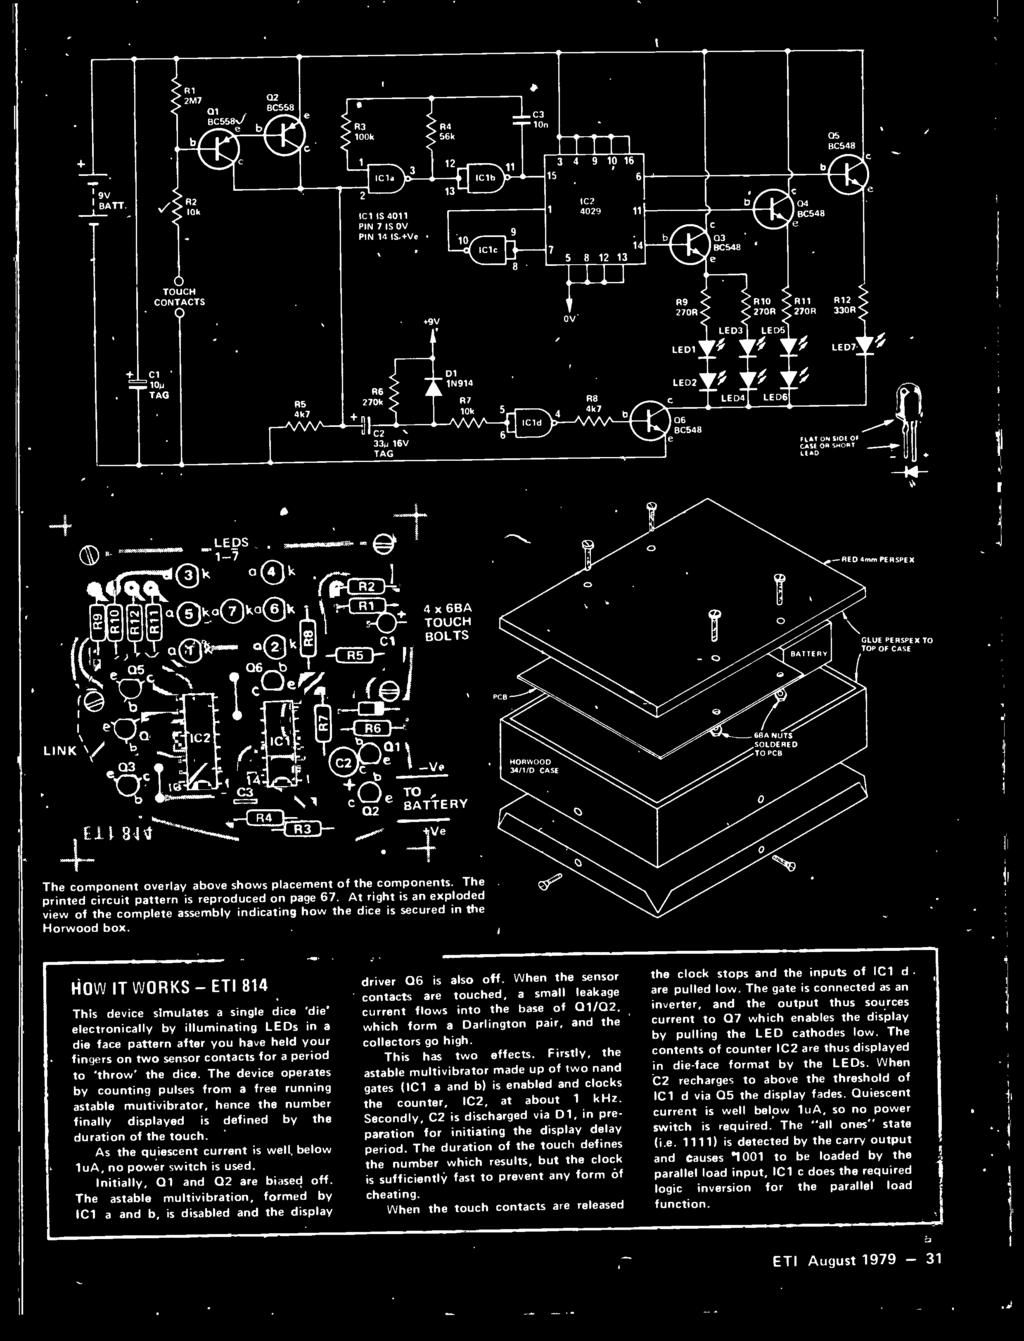 Electronics Today E R Ocac M1 F010 F1111f Ni Fff Htifclr F Lm Bunn Hg Wiring Diagram At Right Is An Exploded View Of The Complete Assembly Indicating How Dice Secured